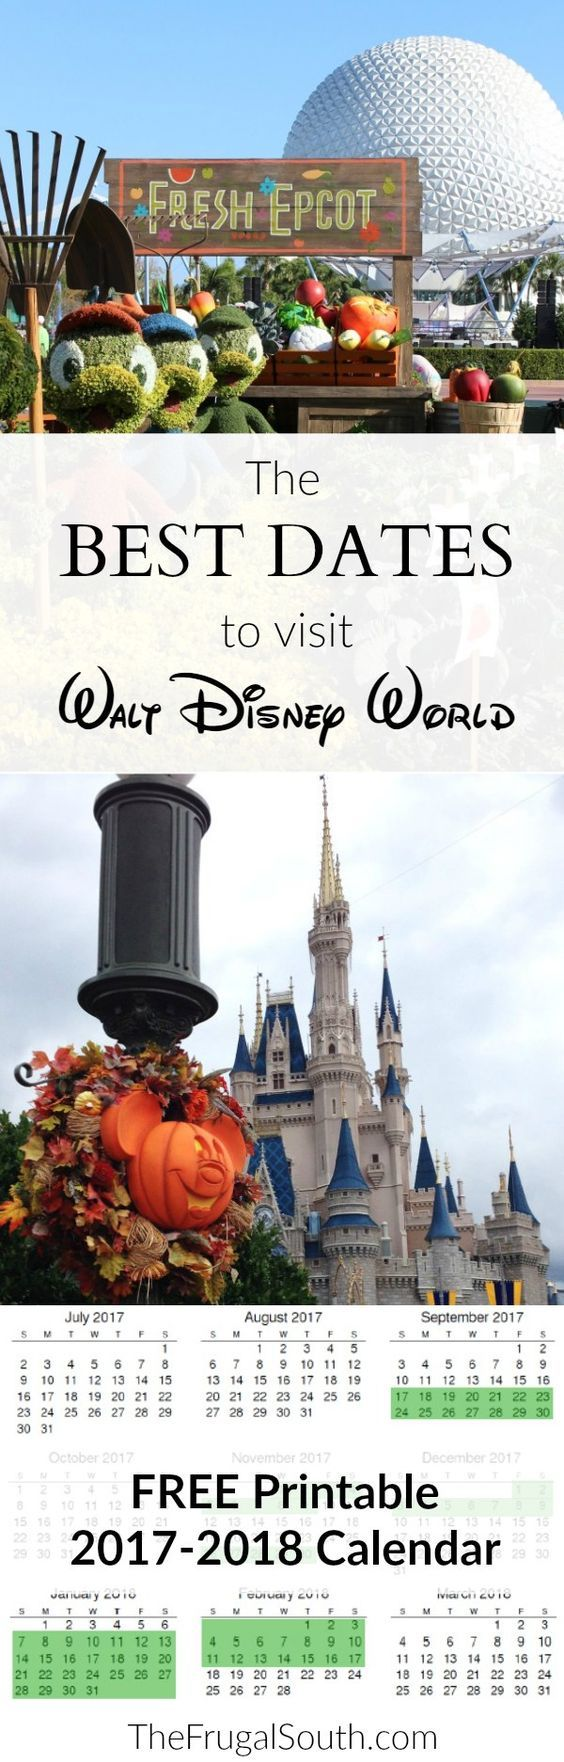 The best dates to visit Walt Disney World in 2017 & 2018 + free printable calendar. The time of year you visit Disney World can make a huge impact on your vacation experience! Get my Disney planning tips and tricks for the best weeks to visit Disney in this post.